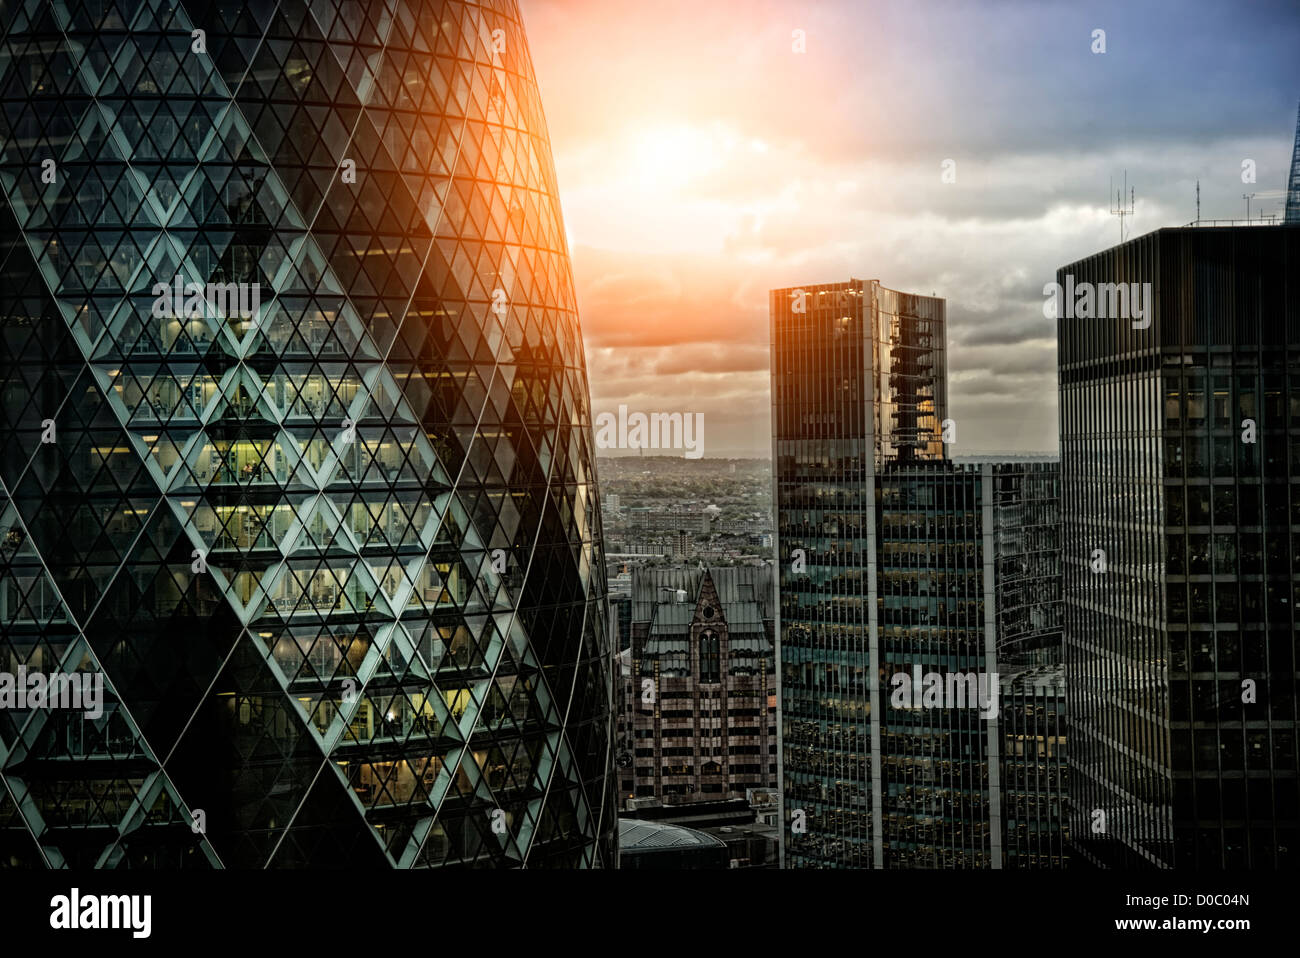 The Gherkin at sunset - Stock Image